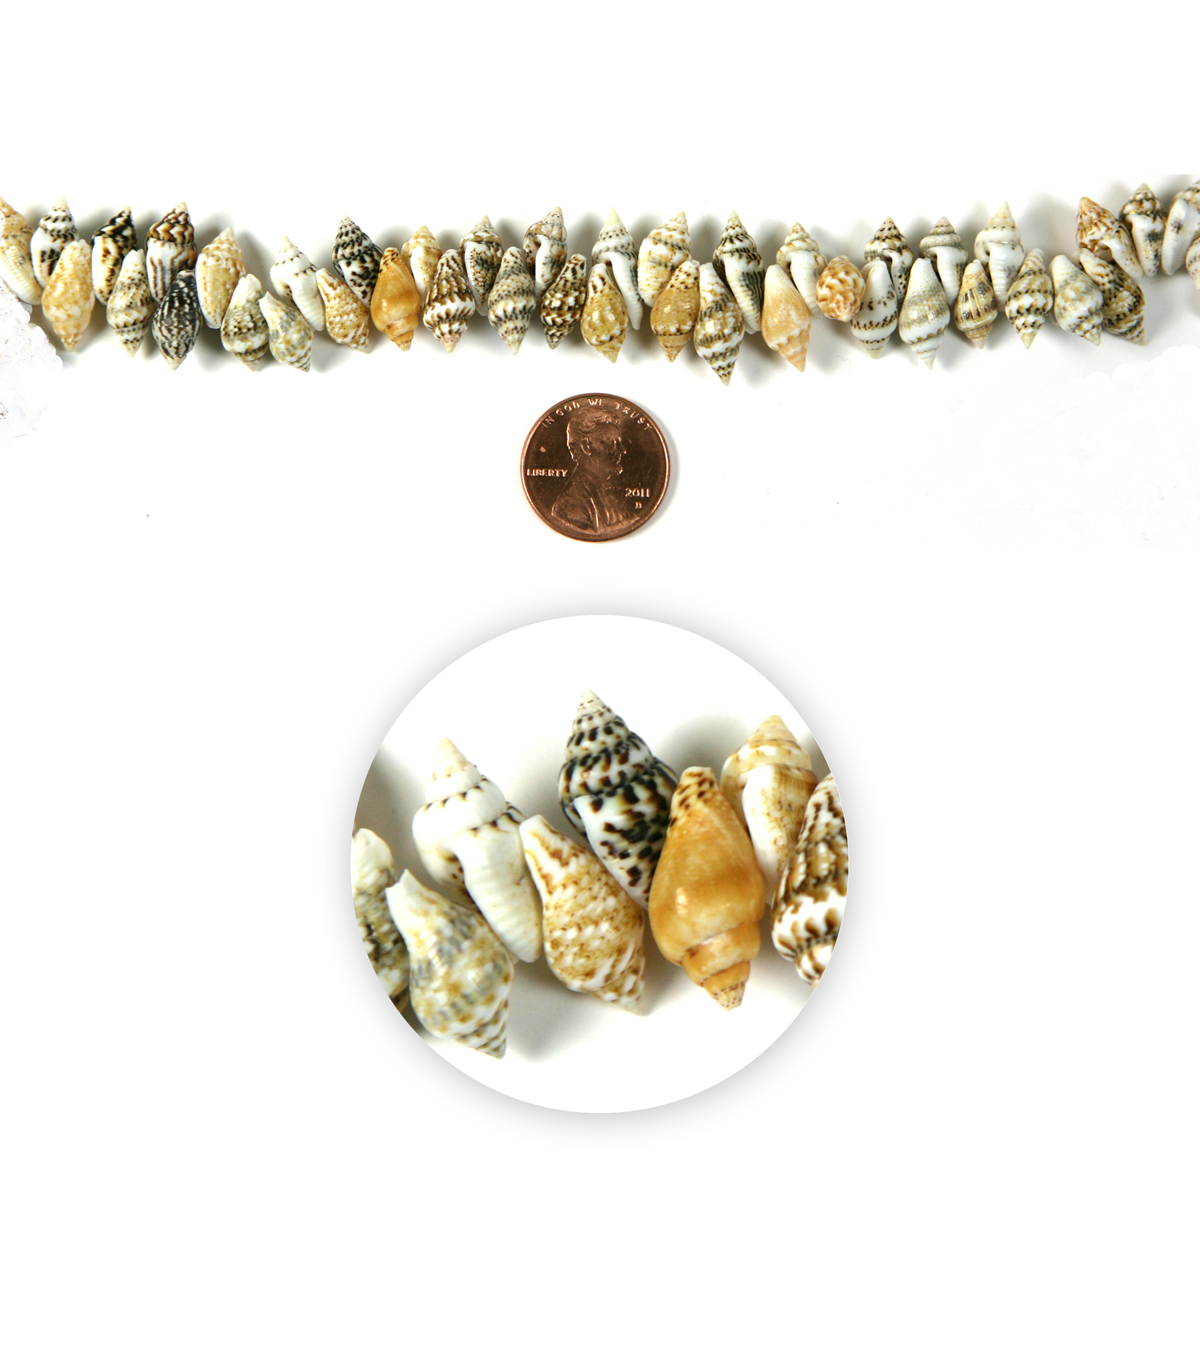 Blue Moon Strung Natural Shell Beads,Conch,Natural White & Brown